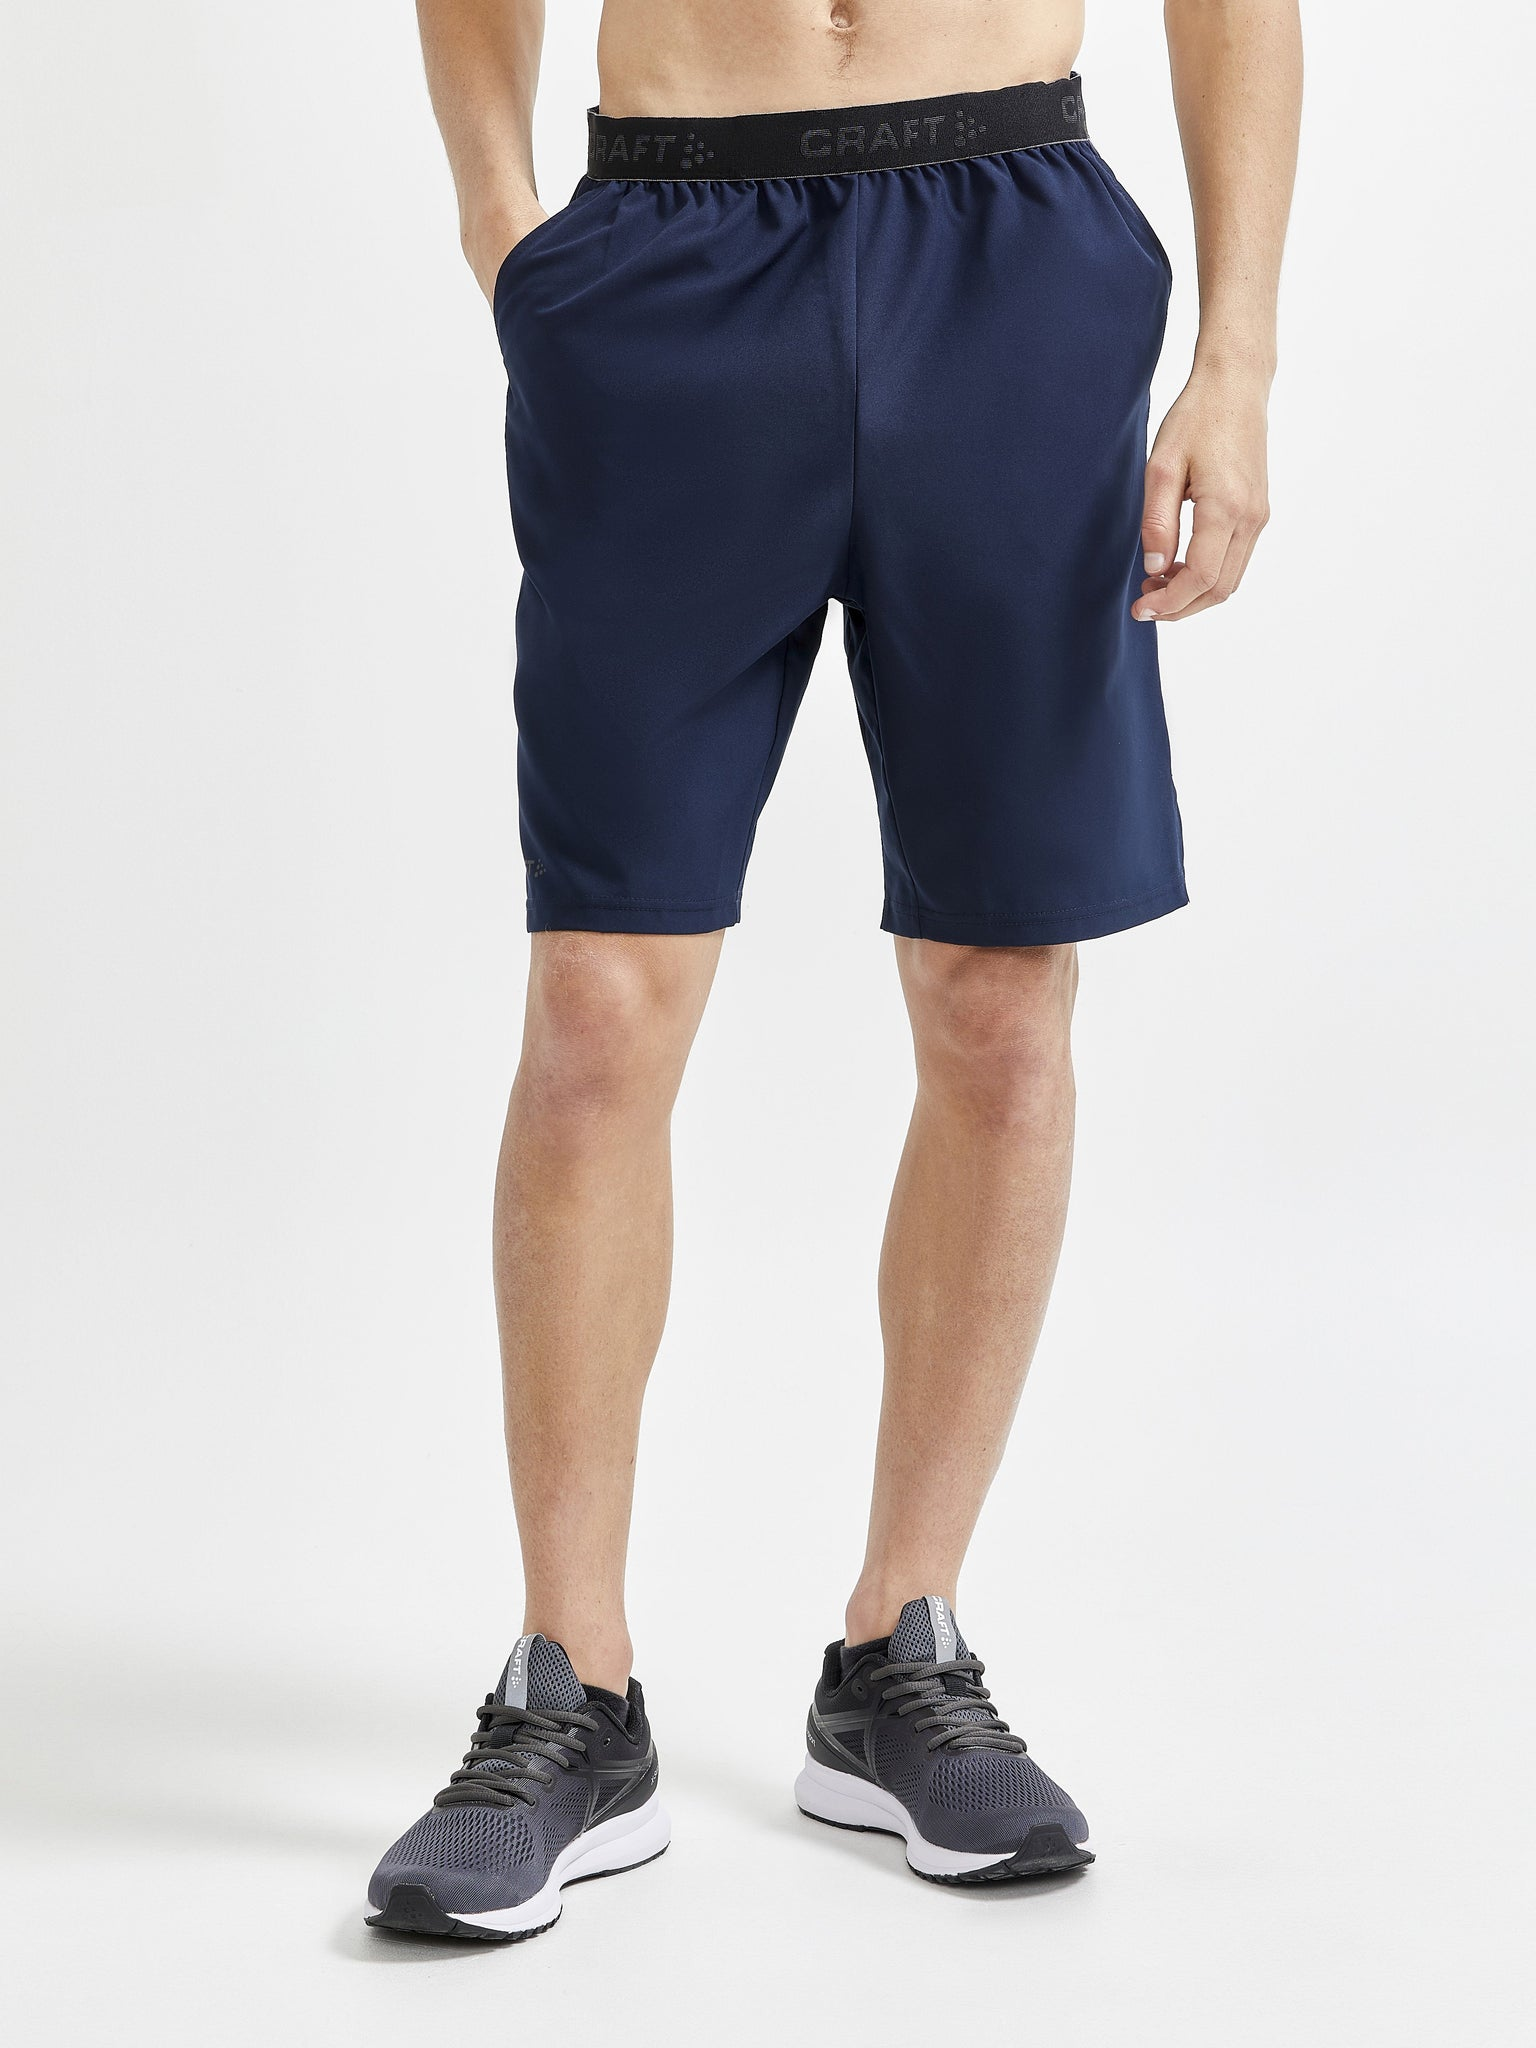 Craft Men's Core Essence Relaxed Shorts - Blaze